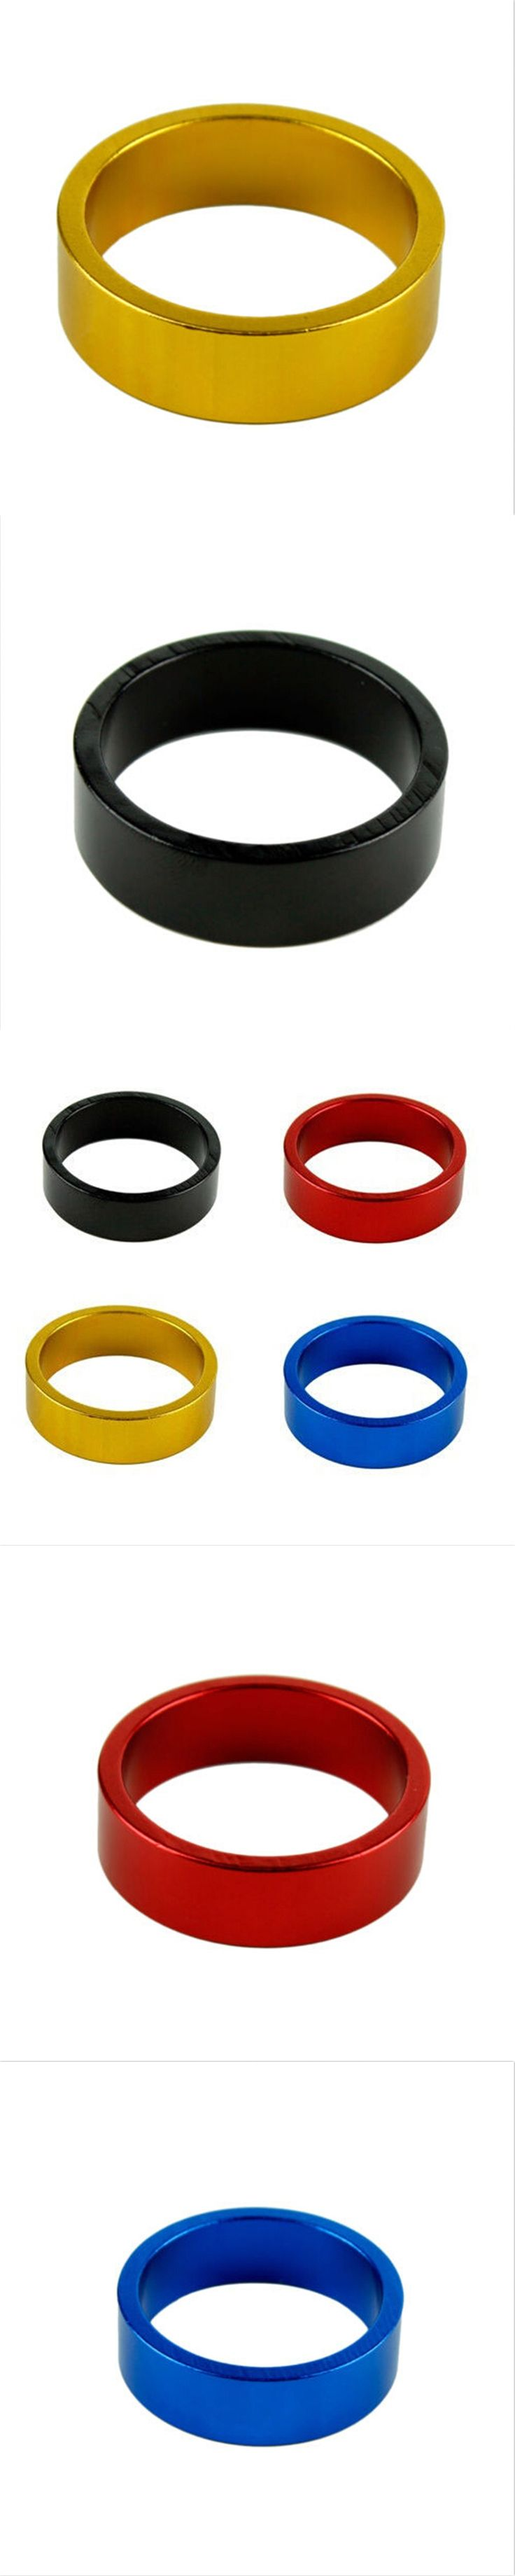 New 10 mm Aluminum Mountain Road Bike Bicycle Cycling Headset Stem Spacer Bike Parts Accessories New Brand